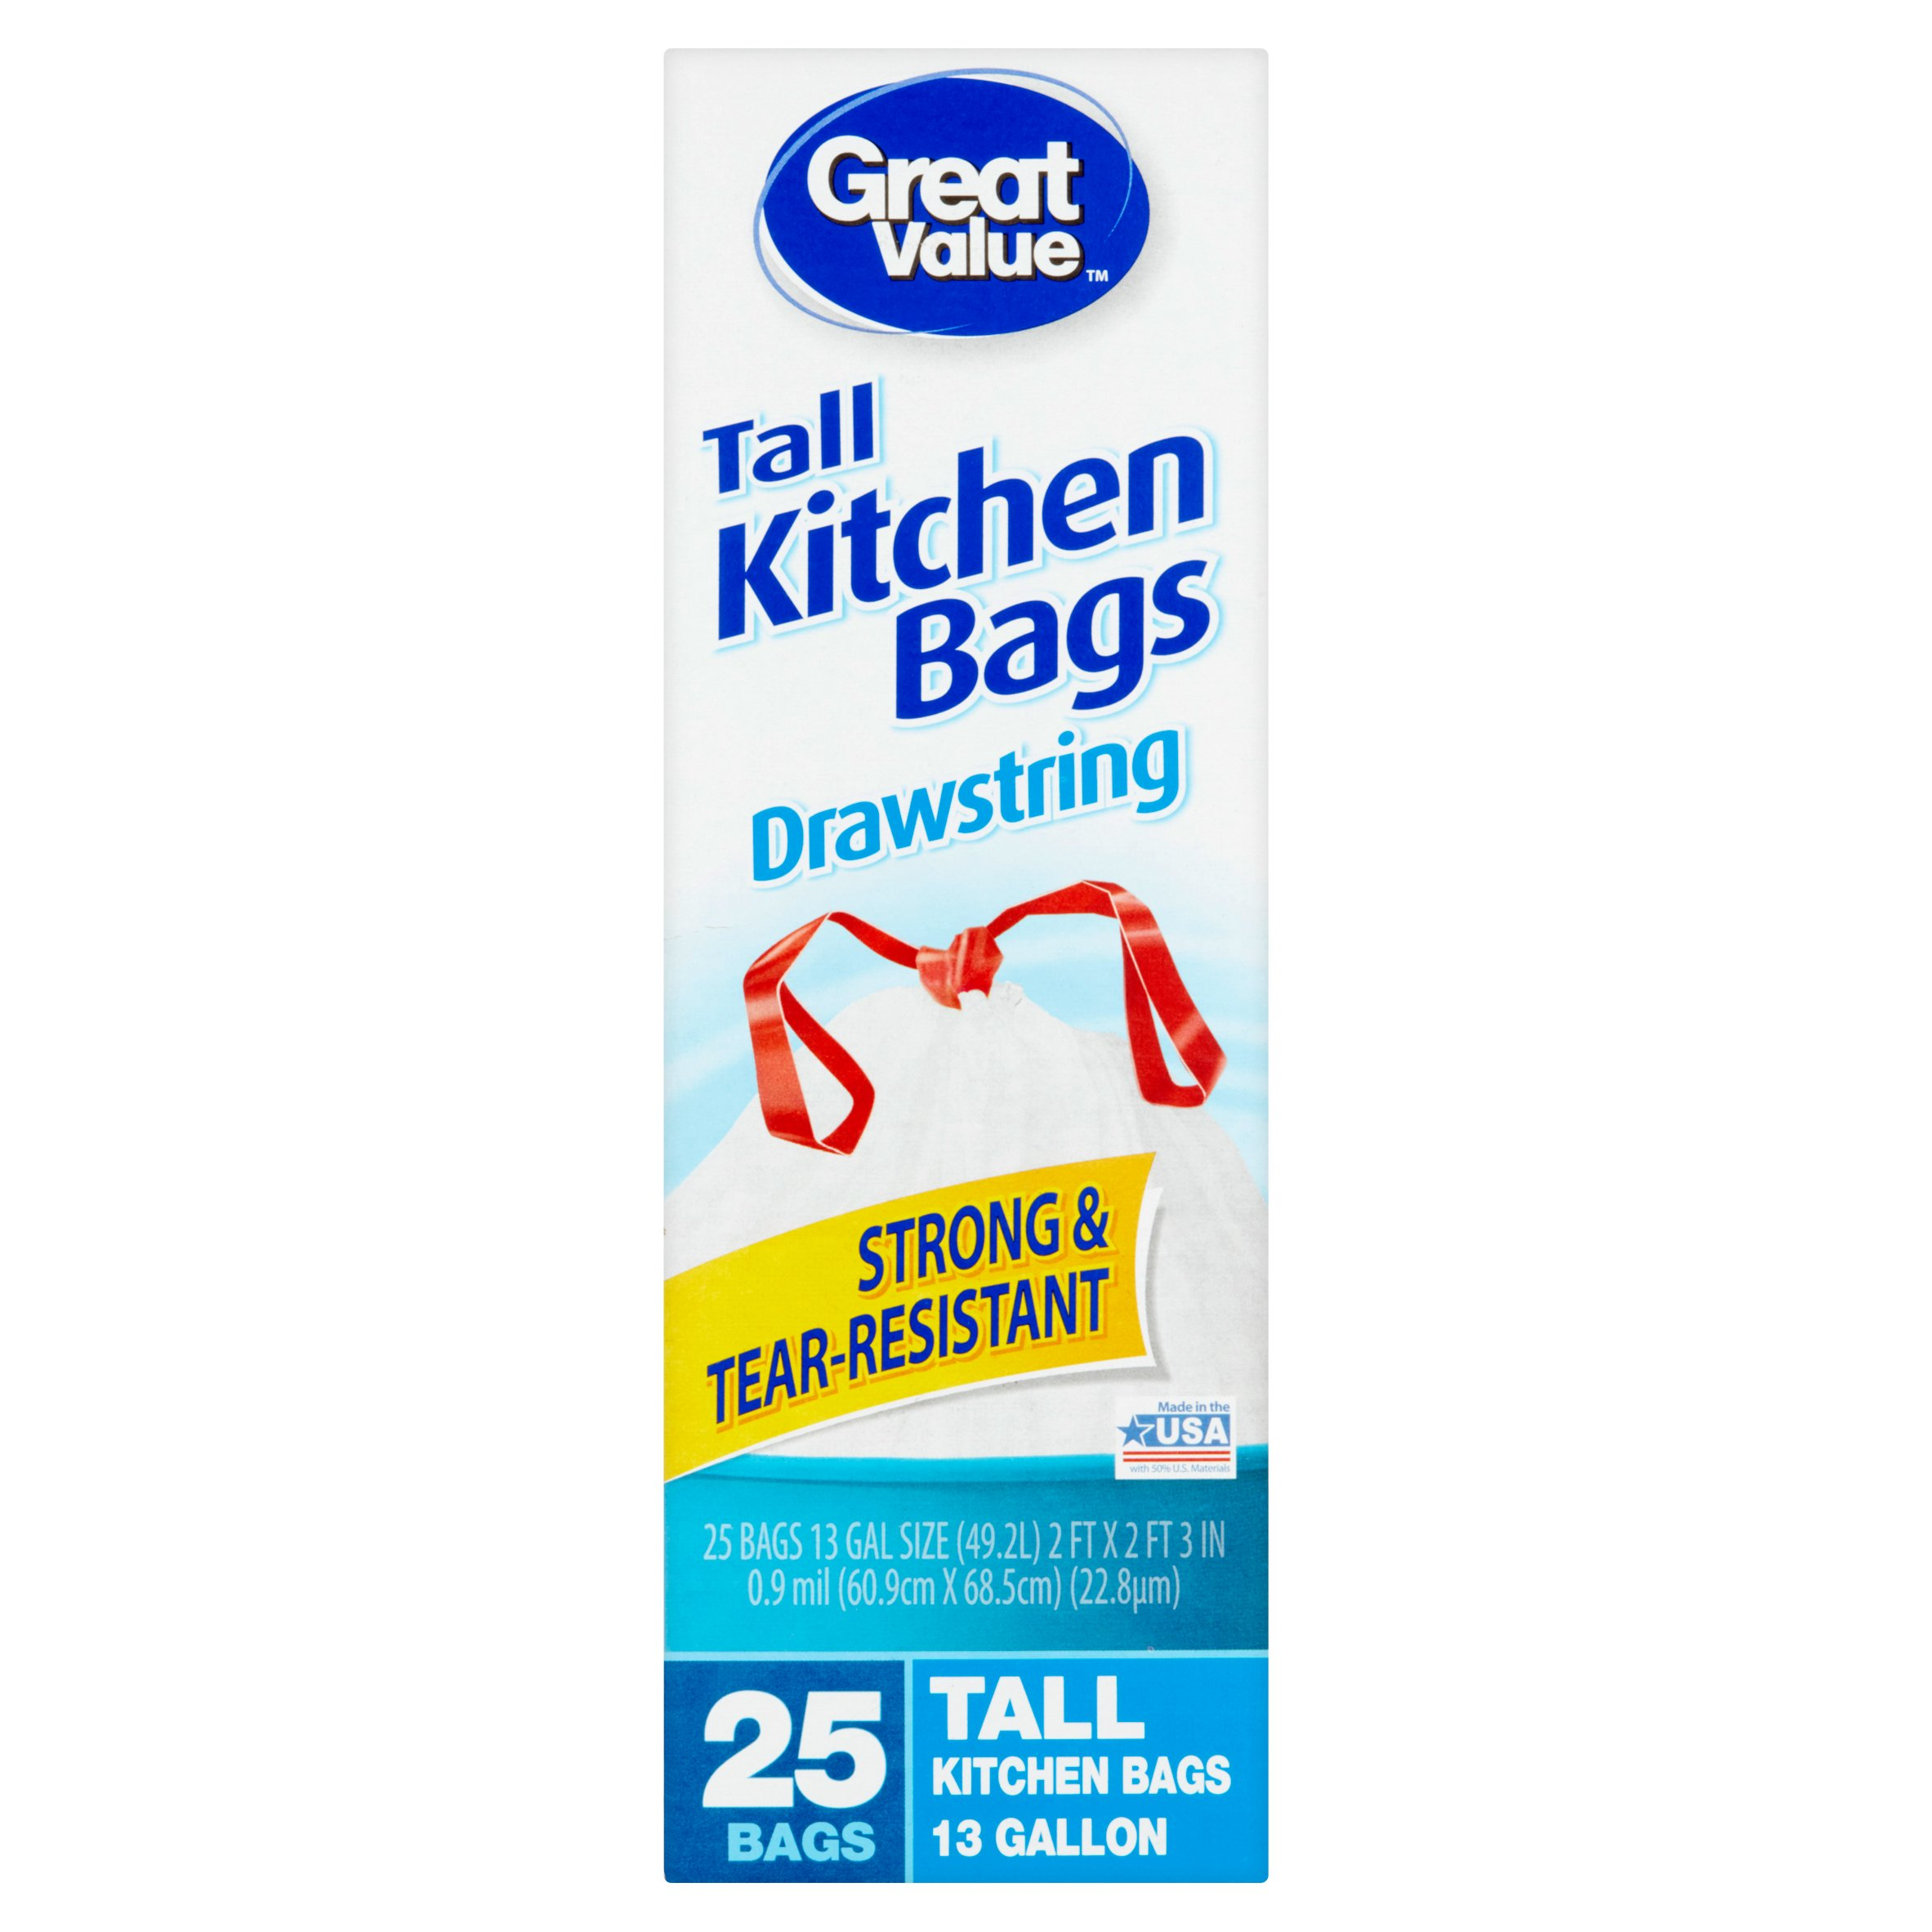 great value drawstring 13 gallon tall kitchen bags 25 count